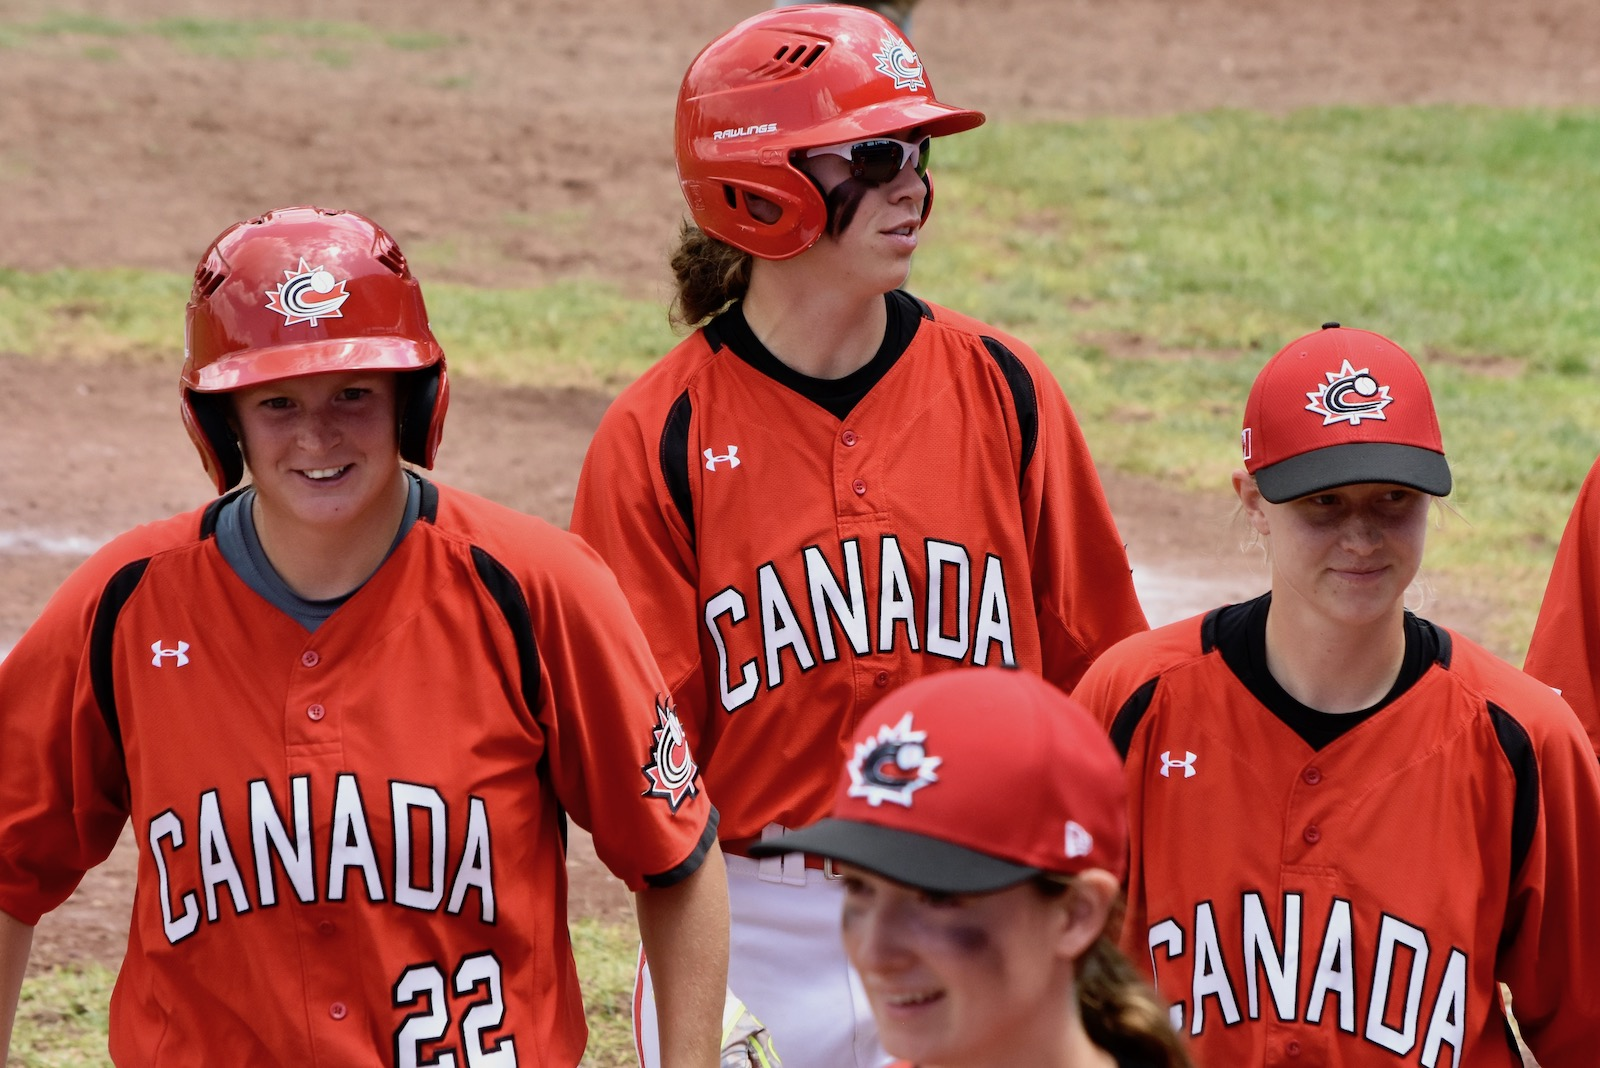 Women's World Qualifier: Canada launches two homers but falls to Venezuela